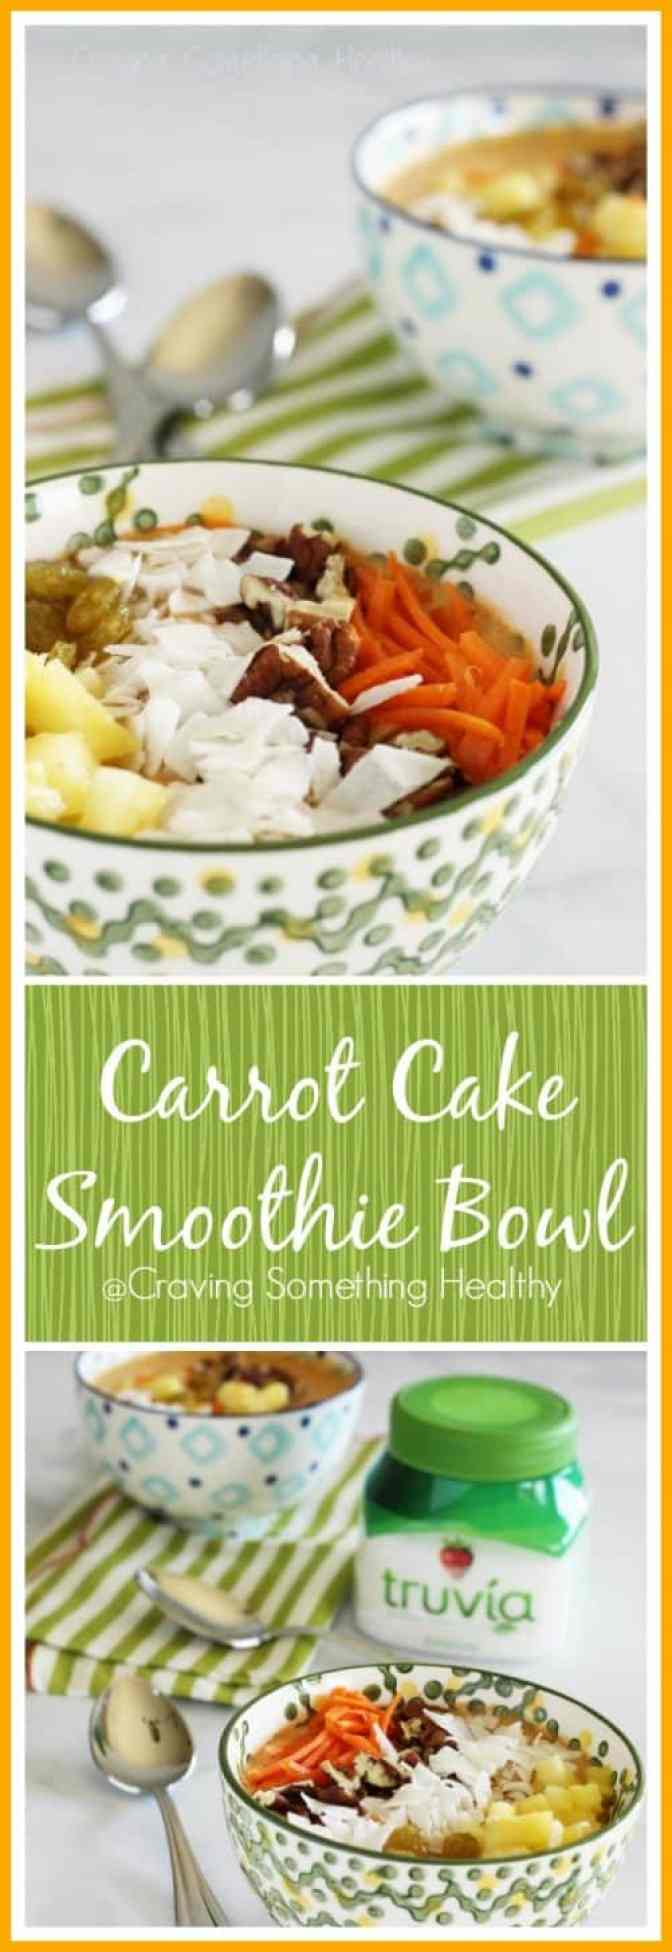 Carrot Cake Smoothie Bowls|Craving Something Healthy